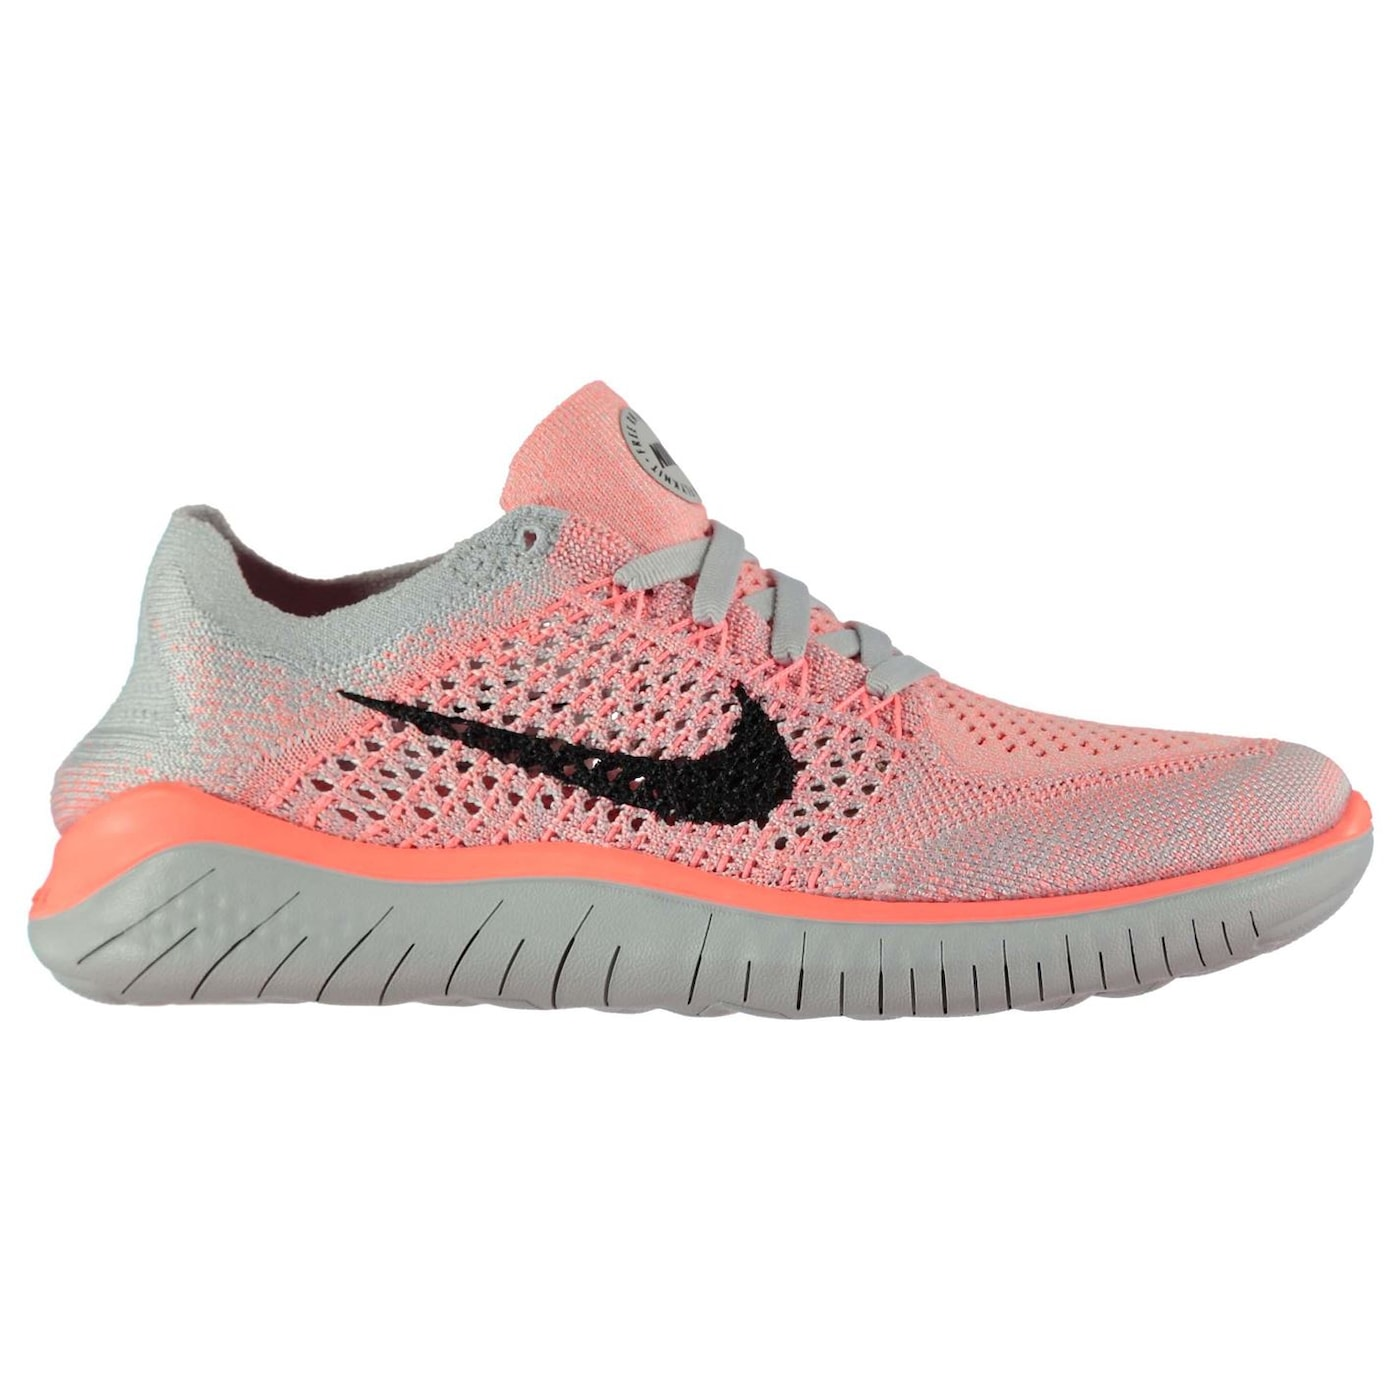 boty Nike Free Run Flyknit dámske Running Shoes